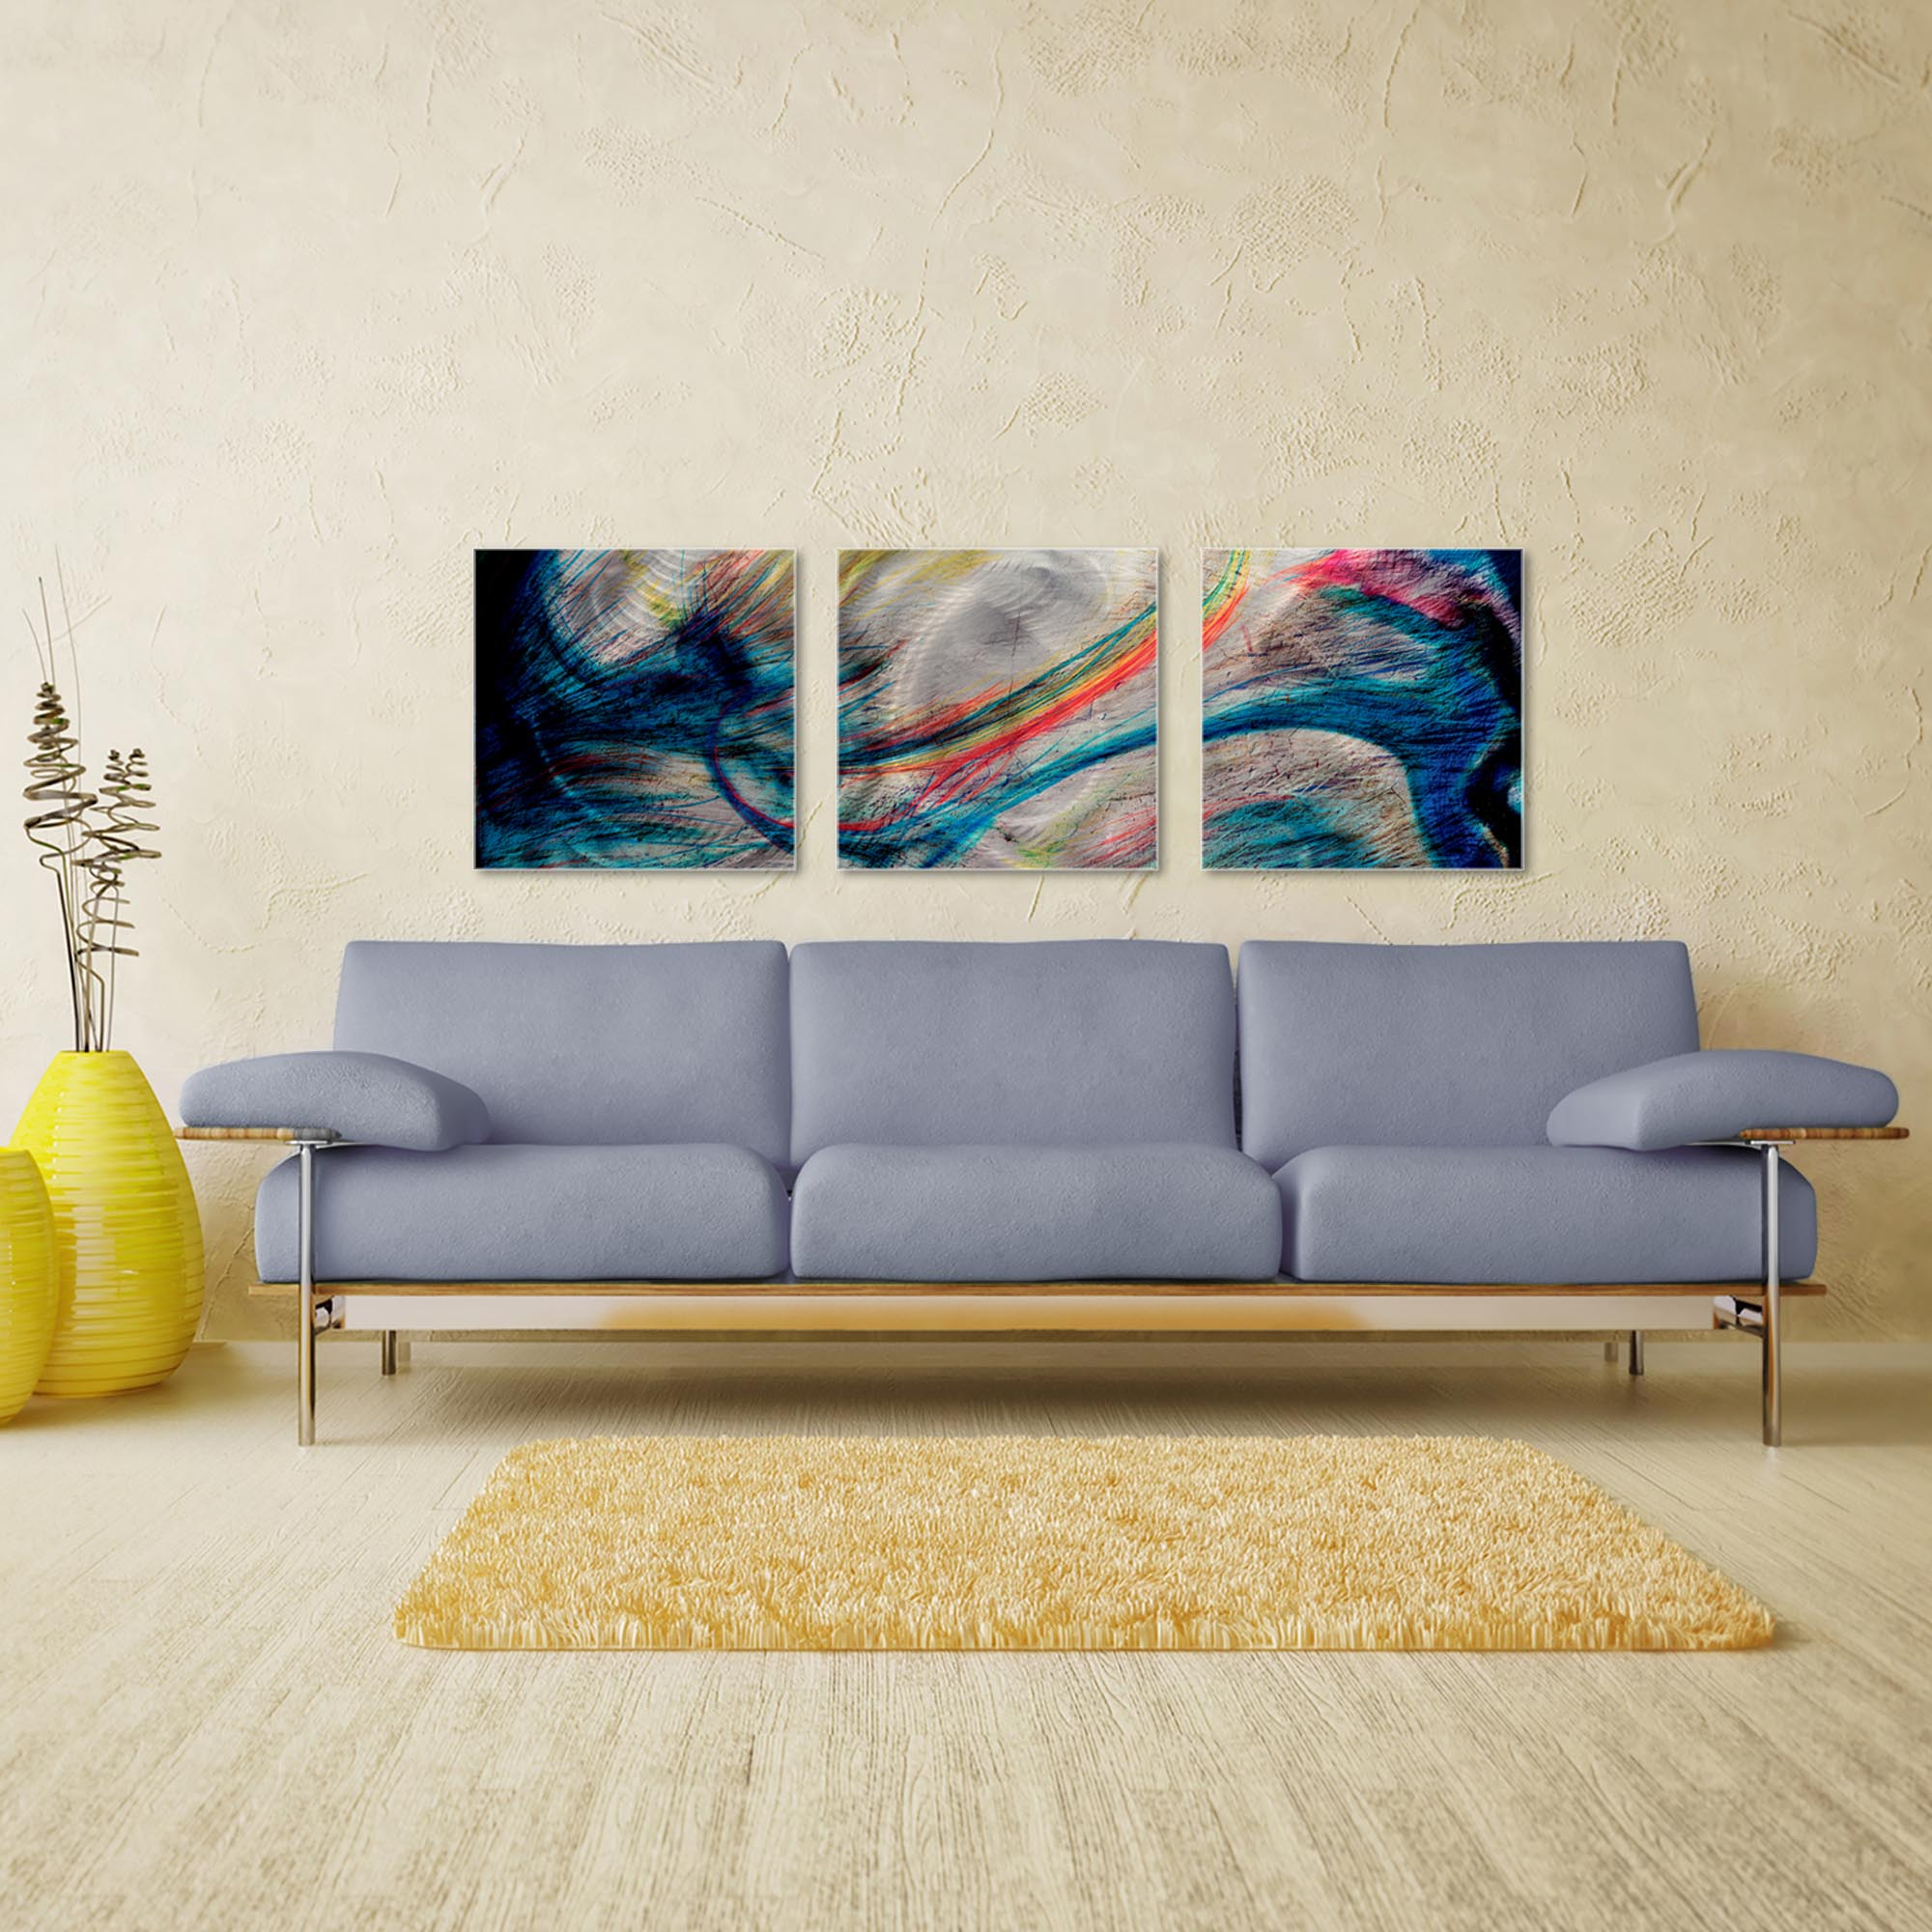 Grace and Virtue Triptych Large 70x22in. Metal or Acrylic Abstract Decor - Image 3